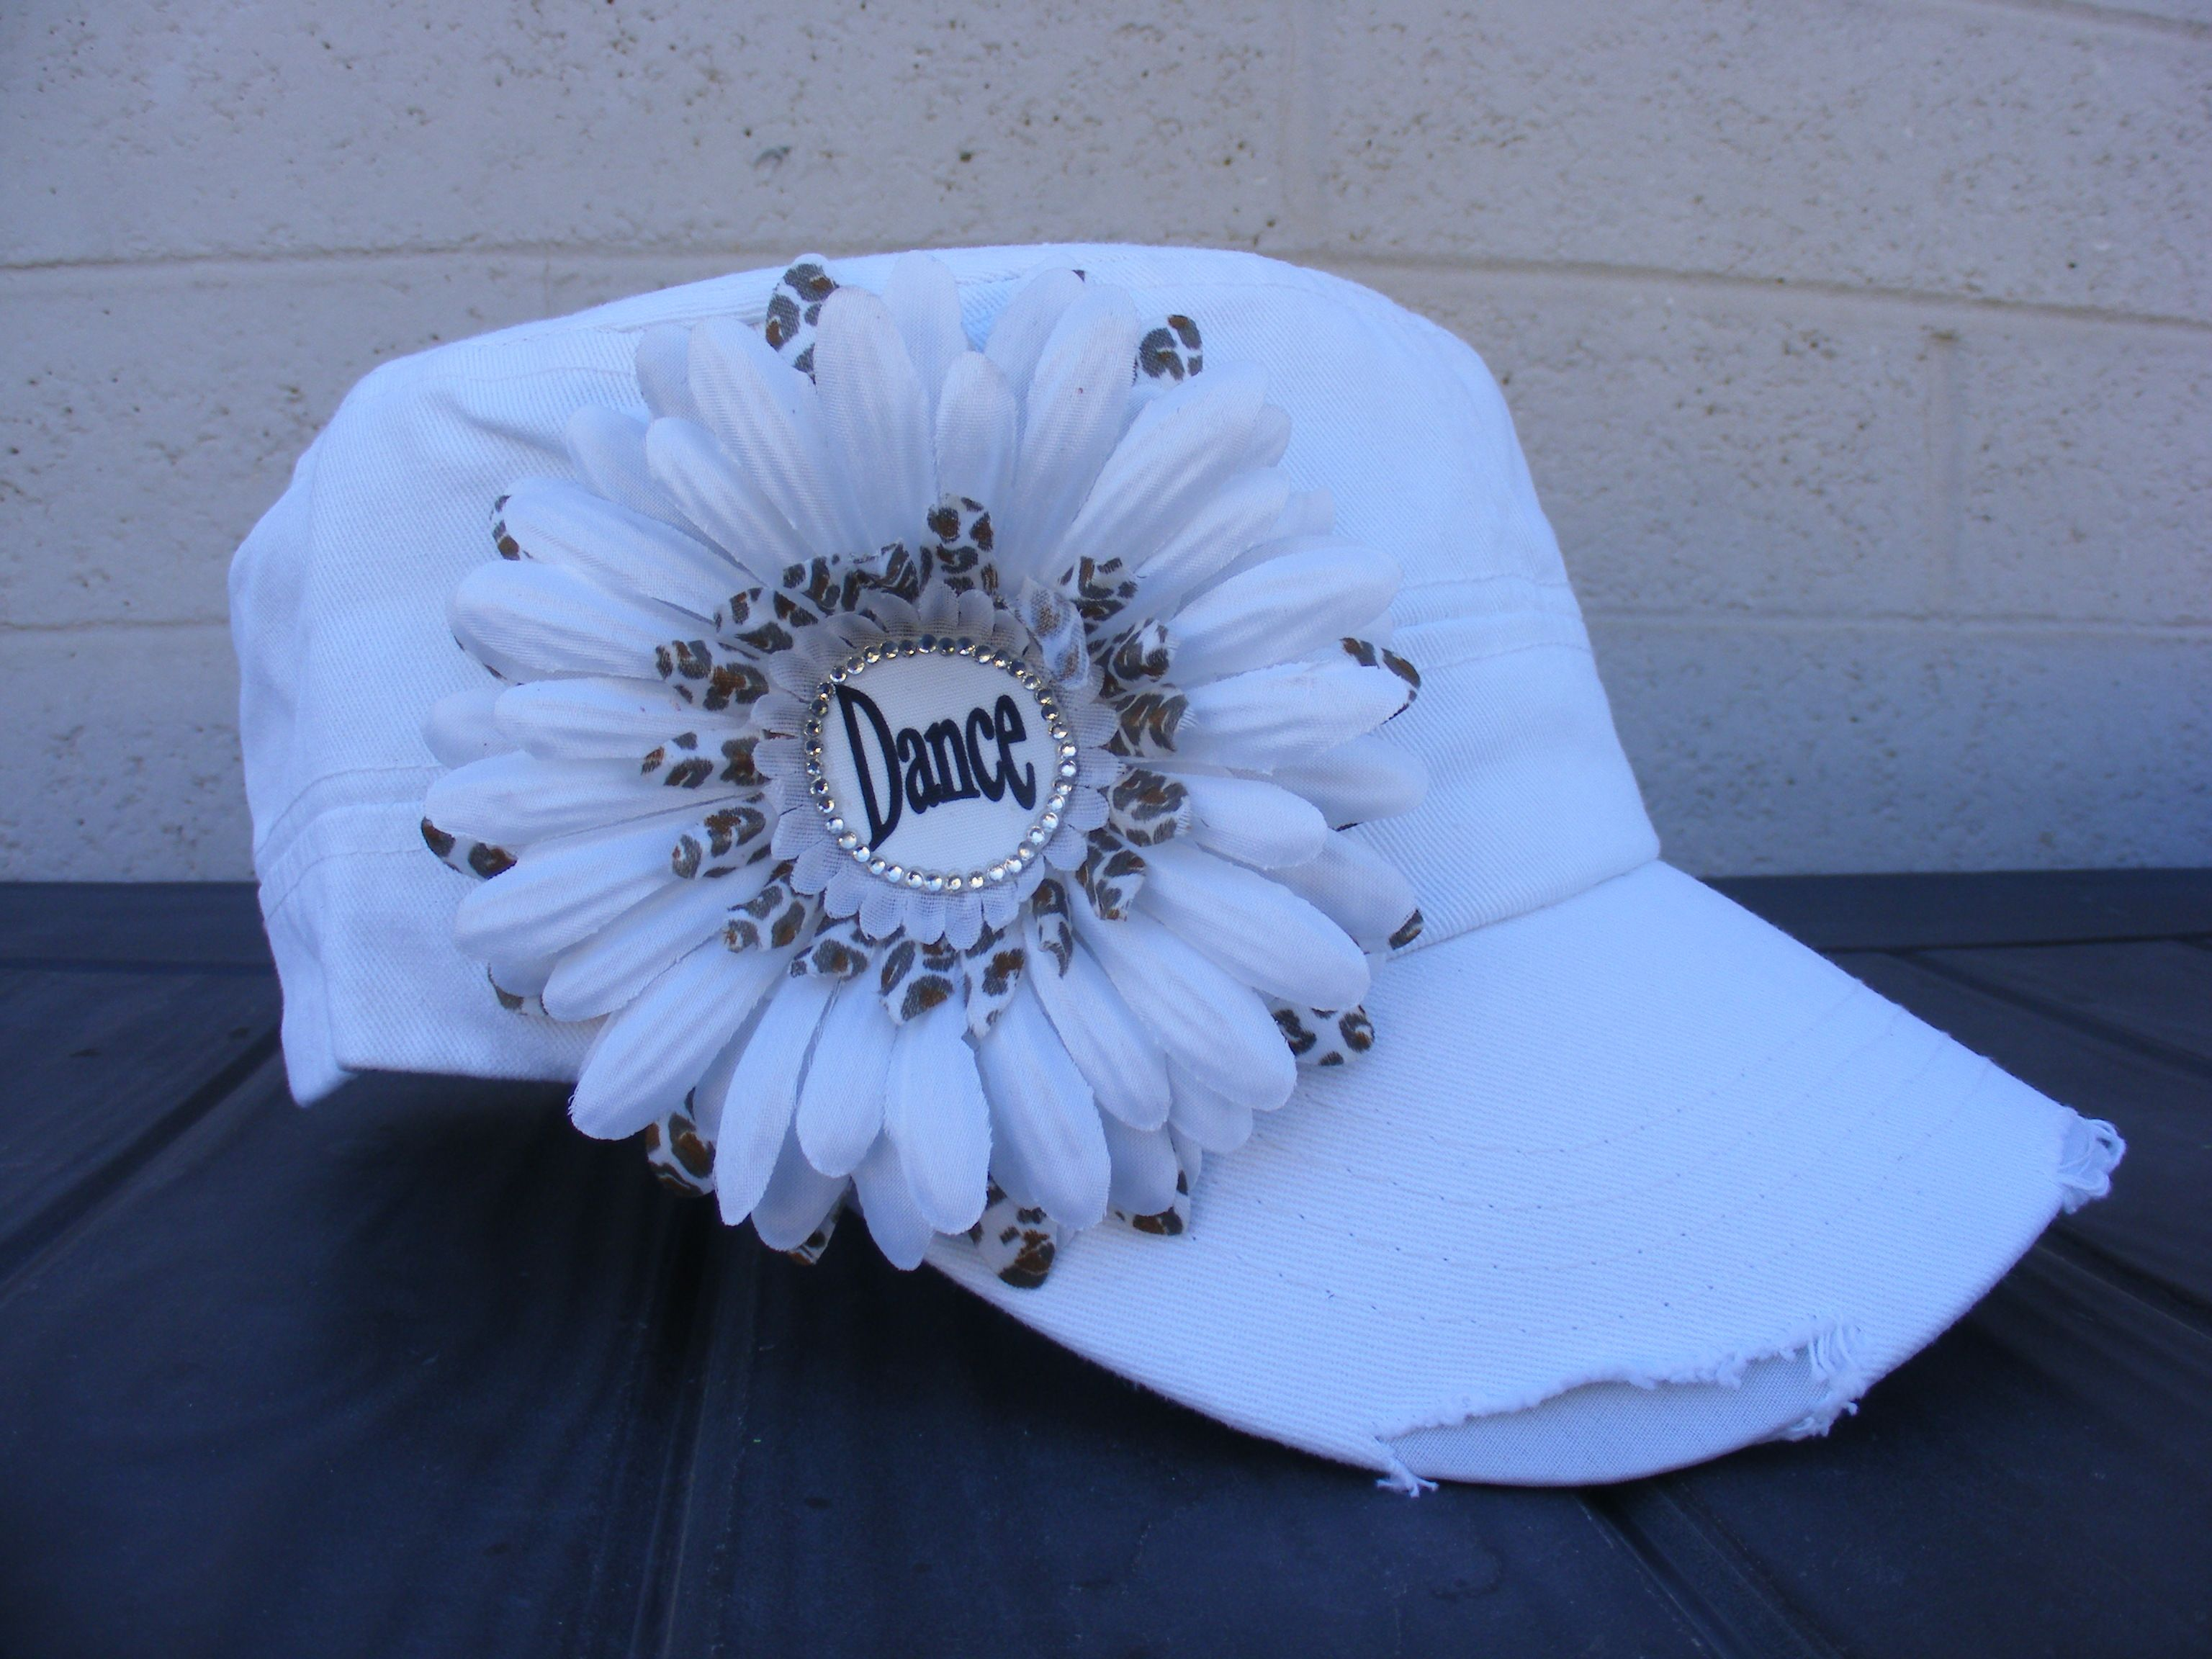 White dance mom cadet hat with silk white and leopard flowers this hat has a distressed look with rhinestone crystals really stands out! Check it out on Capsbykari.etsy.com